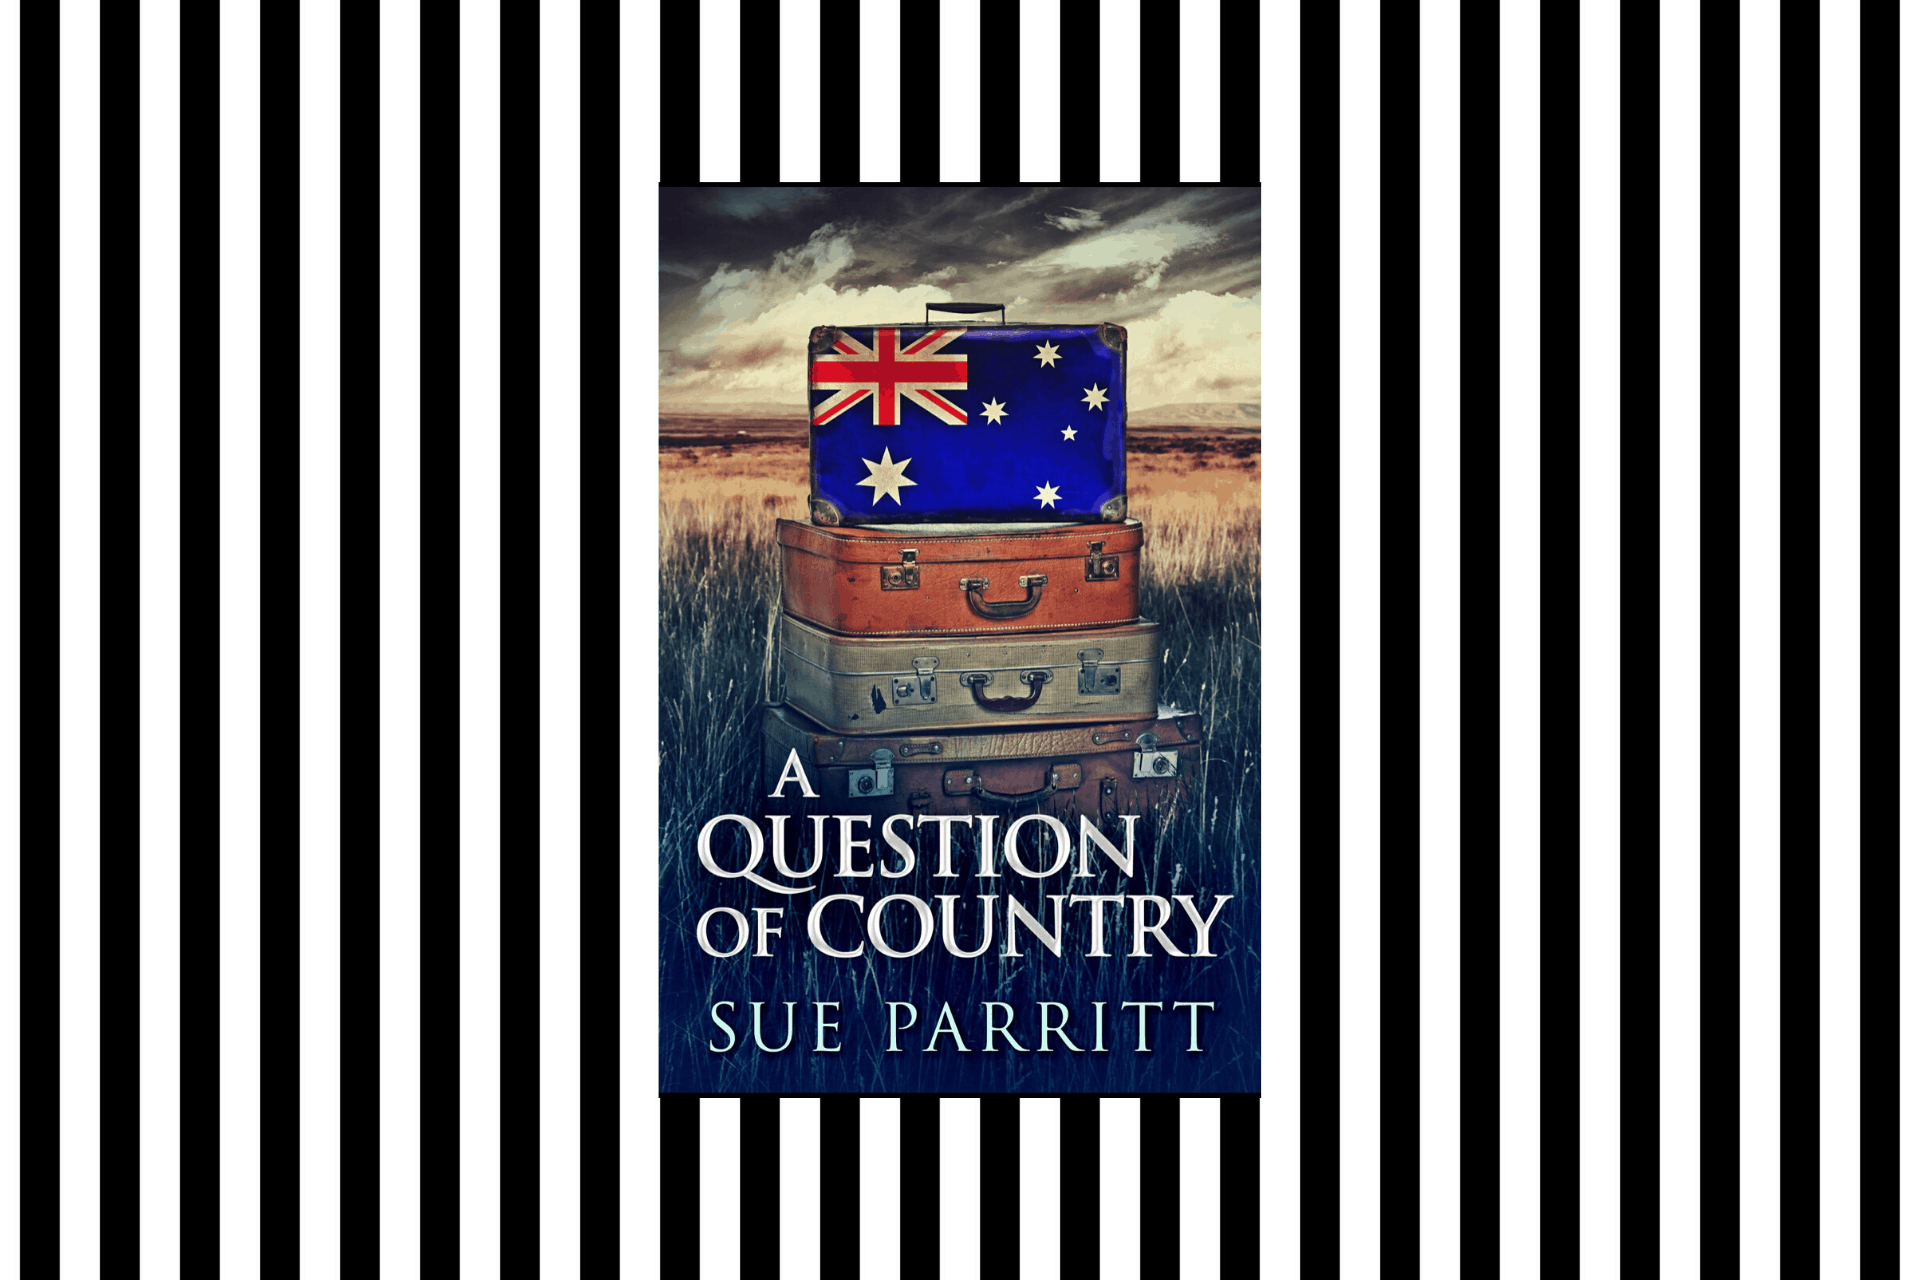 A Question of Country by Sue Parritt